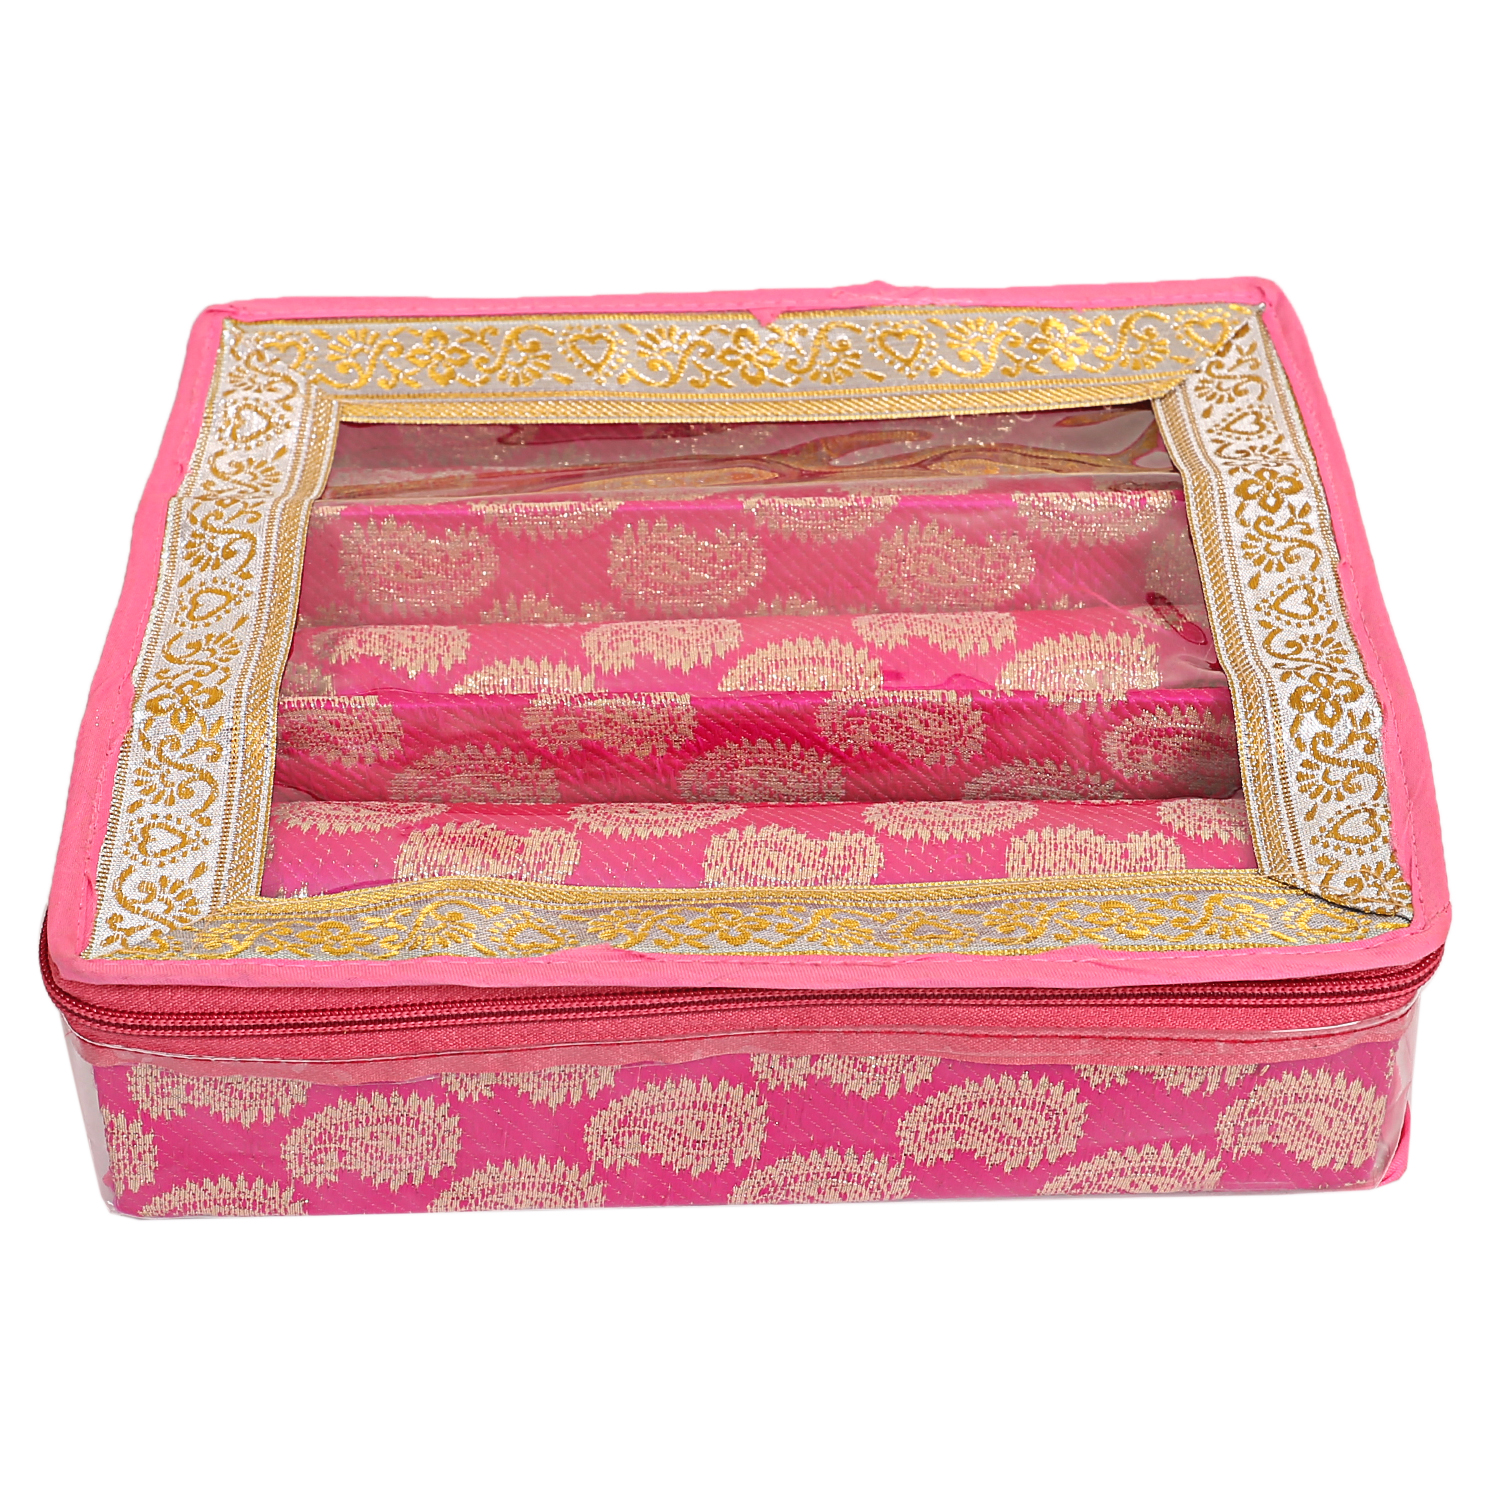 Kuber Industries Wooden 3 Rod Bangle Box (Pink) Set of 2 Pcs